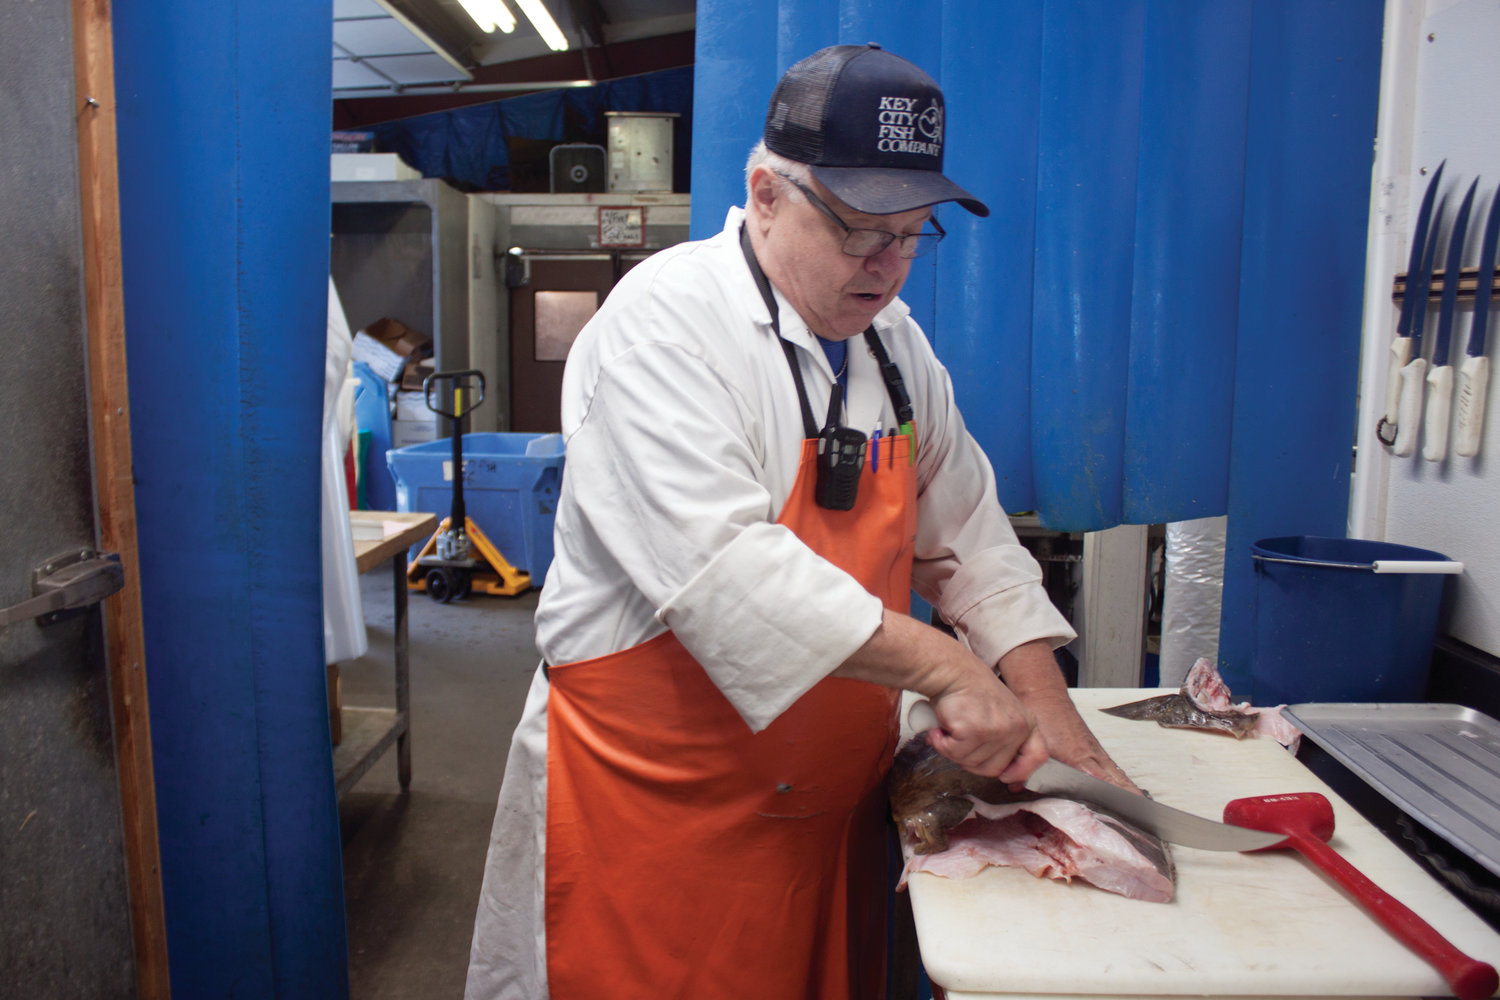 Key City Fish Company meat specialist Daniel Knudson and owner Johnpaul Davies choose the choicest cuts of fish.